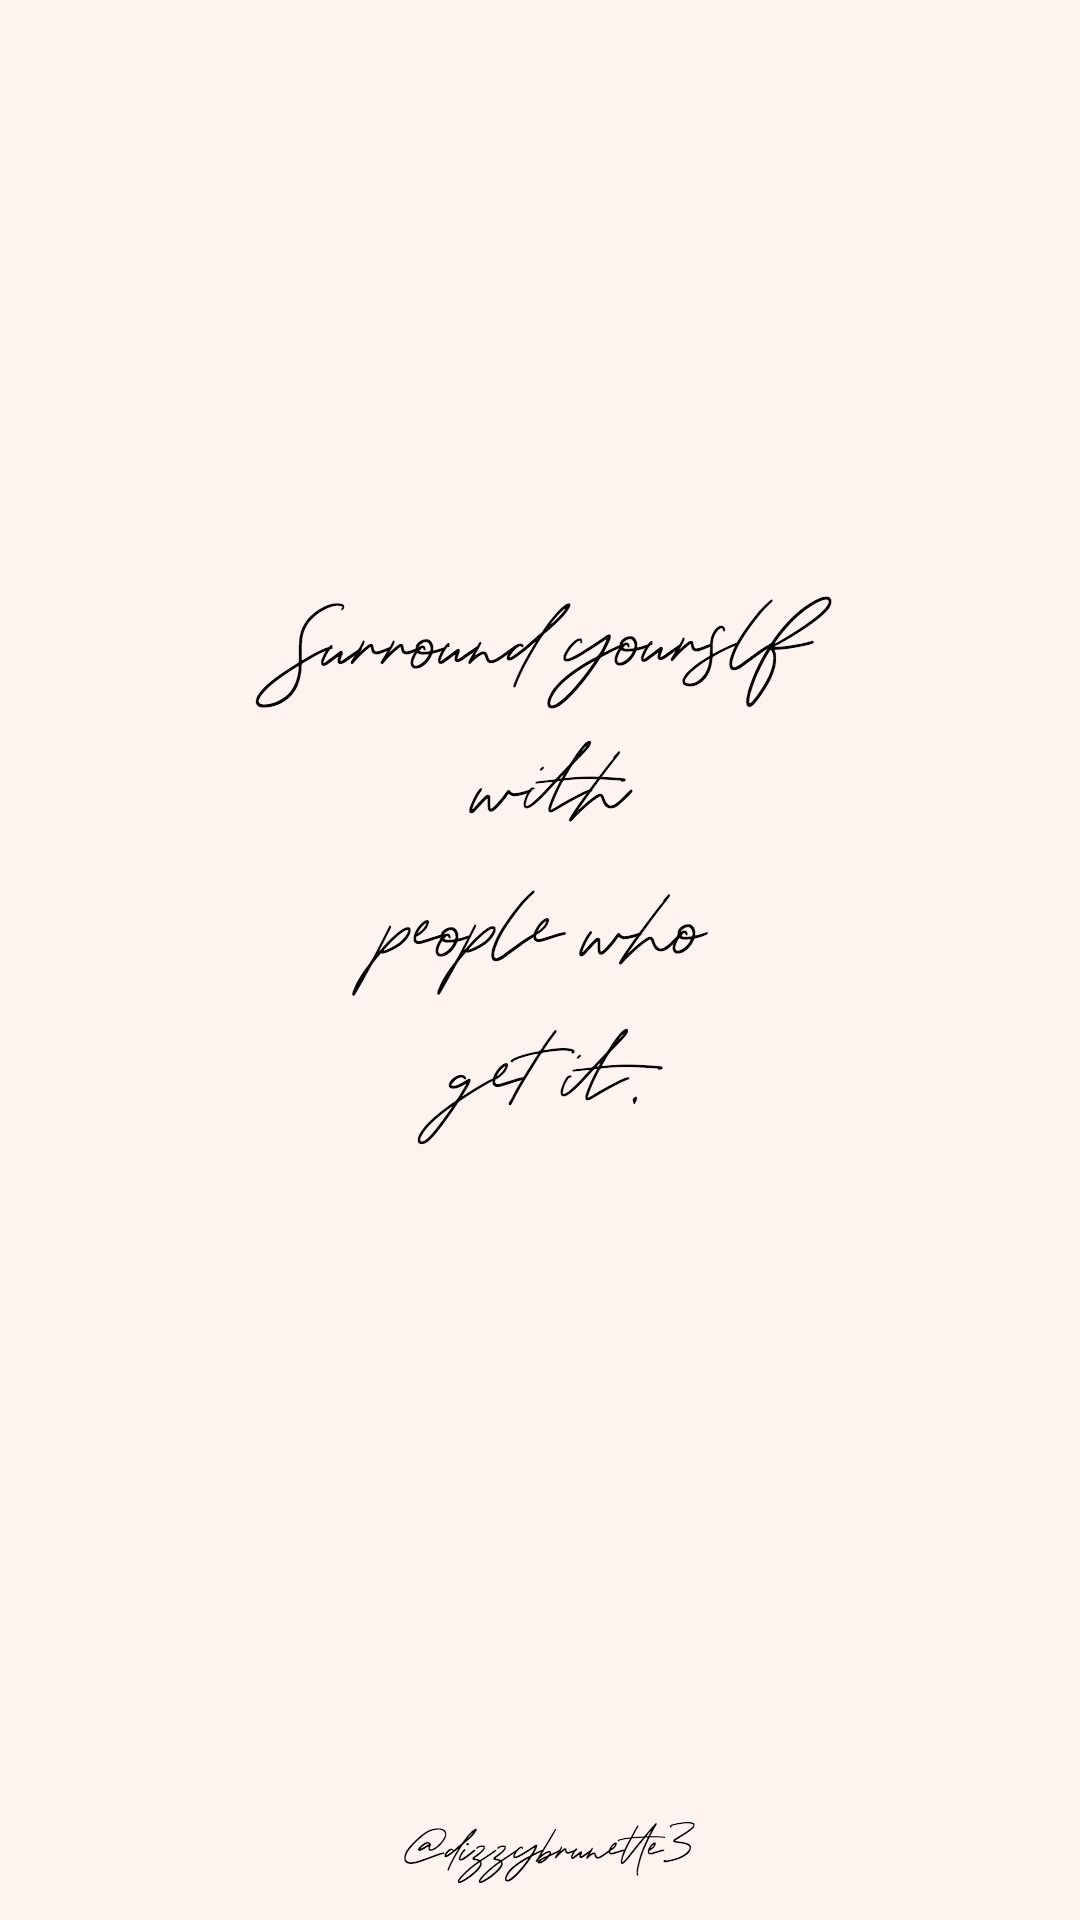 Pink Wallpaper Iphone Wallpaper Phone Wallpaper Free Pink Wallpaper Free Iphone Wallpaper Motivational Wallpaper Phone Wal Words Quotes Cute Quotes Words